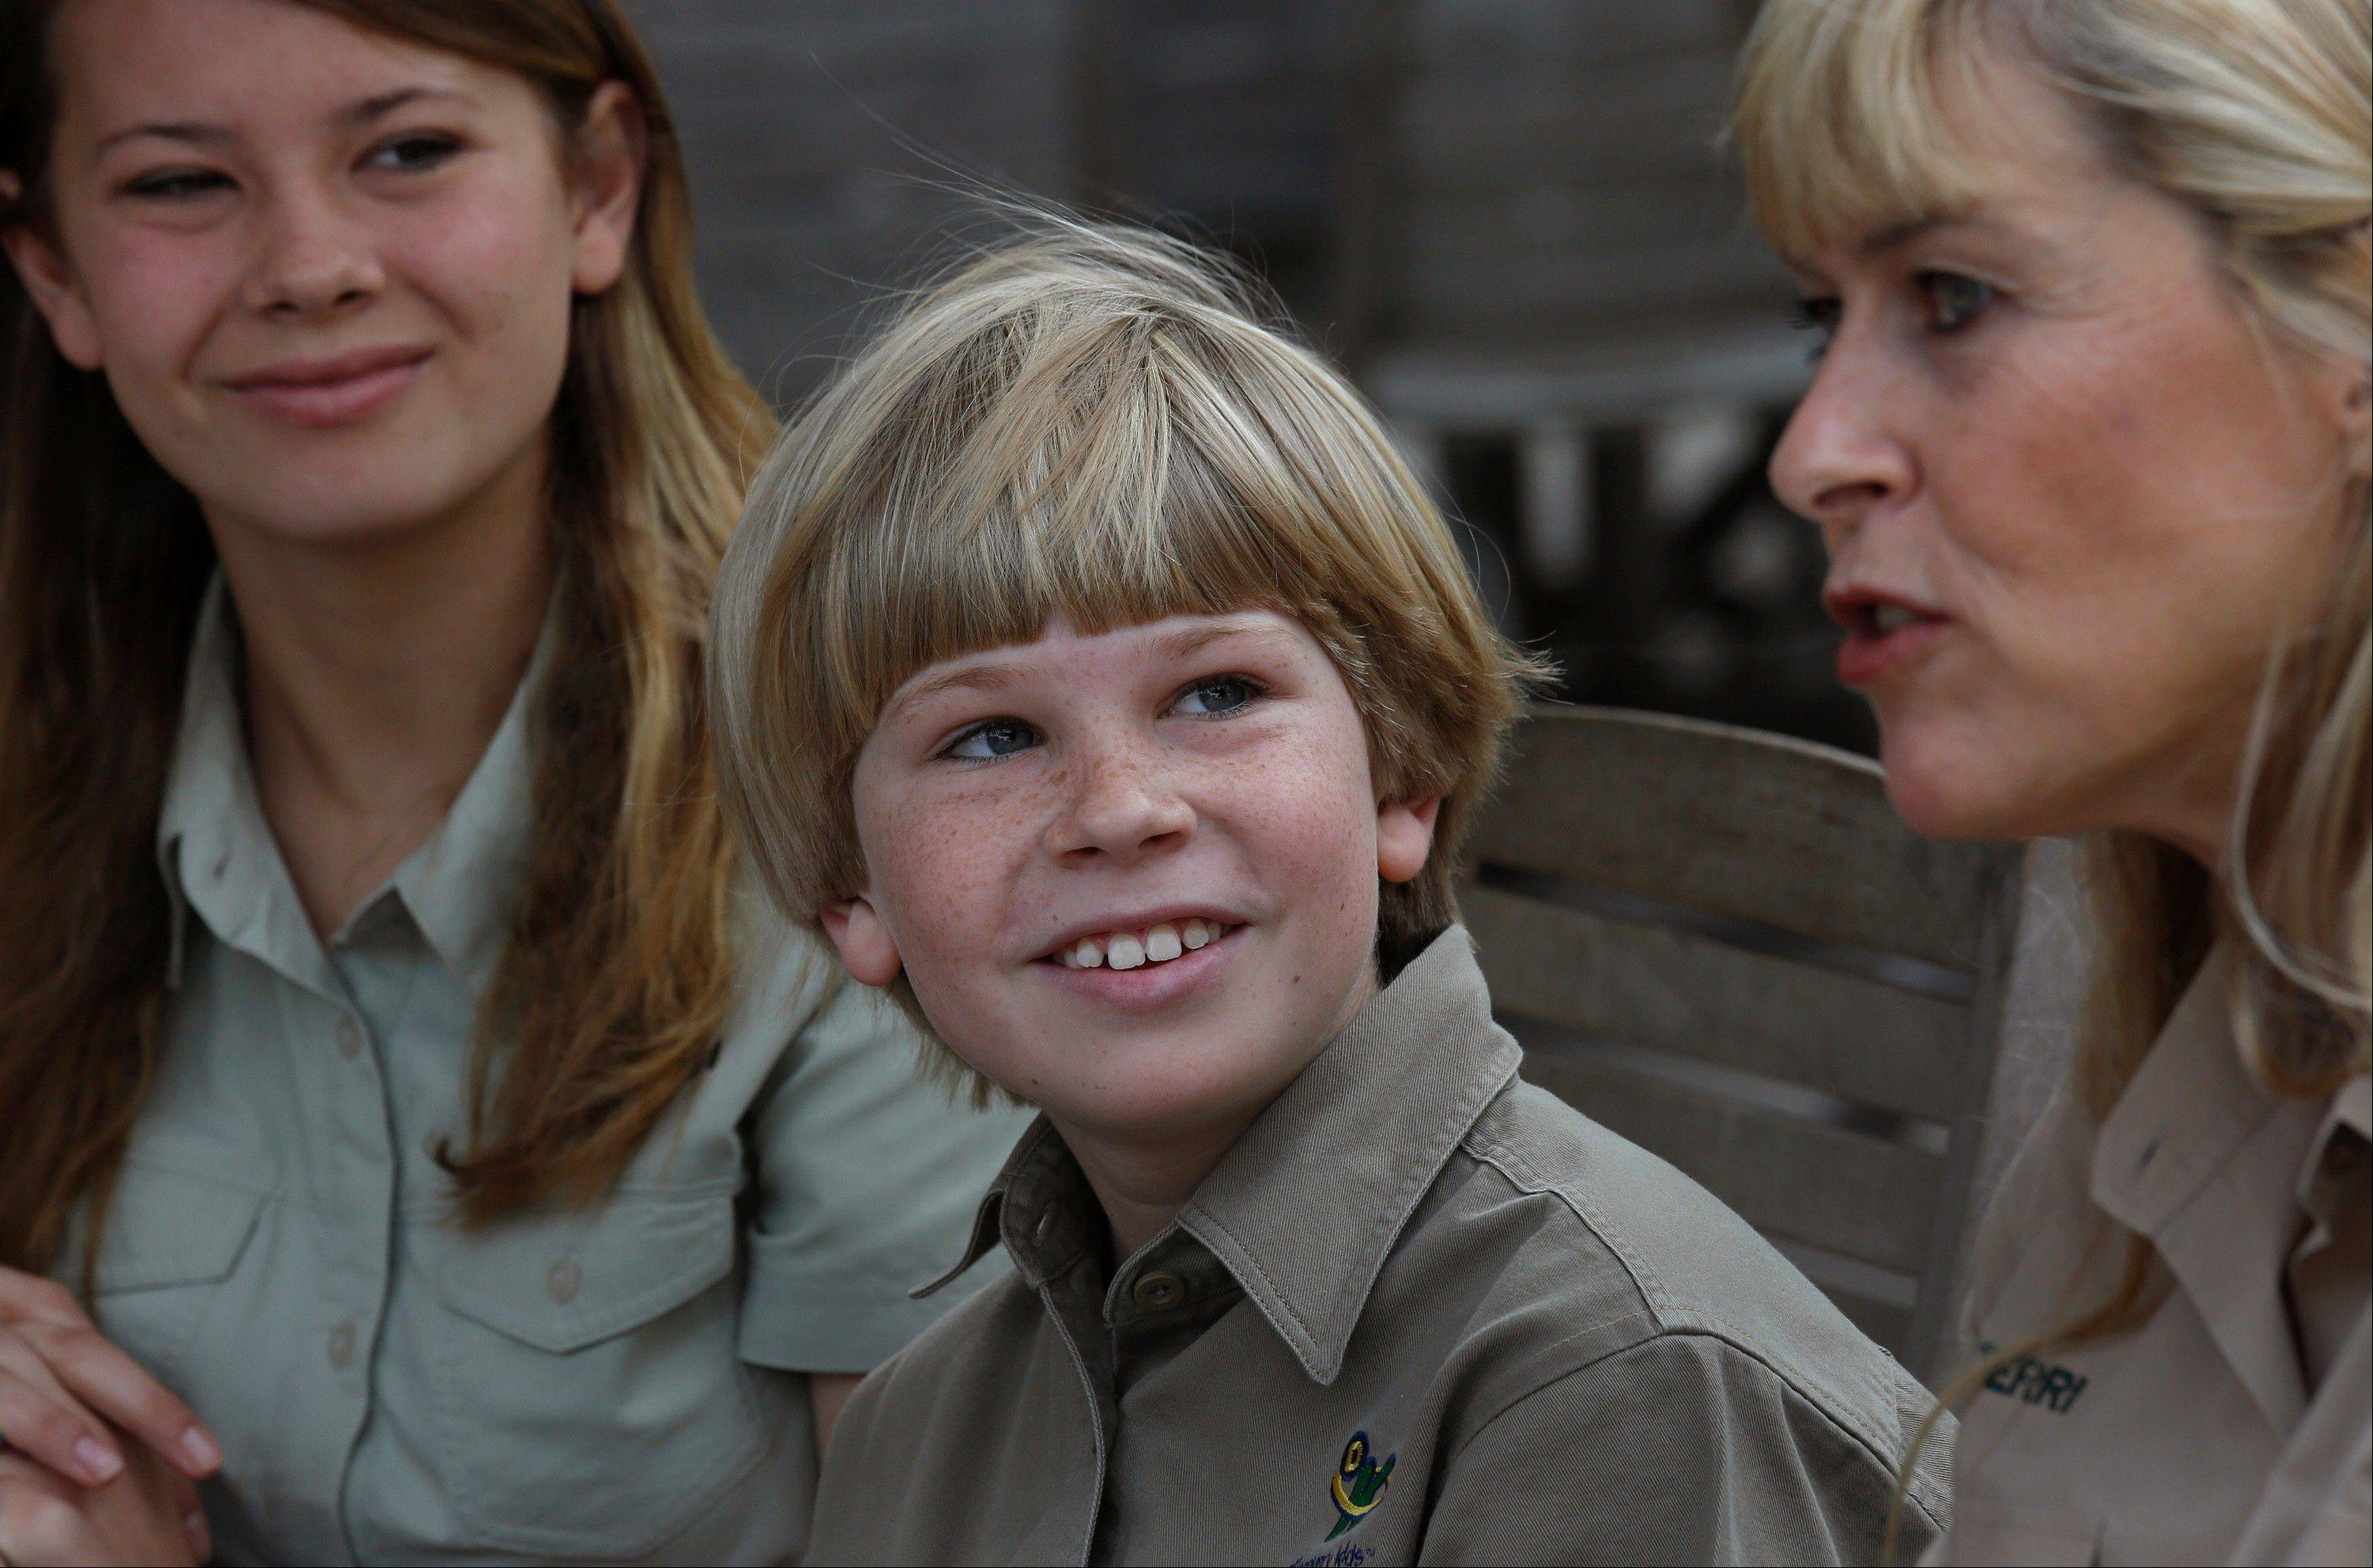 Robert Irwin, 9, the son of the late Stephen Irwin, Australia�s �Crocodile Hunter,� is following his father�s footsteps by making his debut as a television host. He co-hosts �Wild But True,� a show on Discovery Kids that explores parallels between nature and science. He�s sitting in between mom Terri and sister Bindi Irwin.